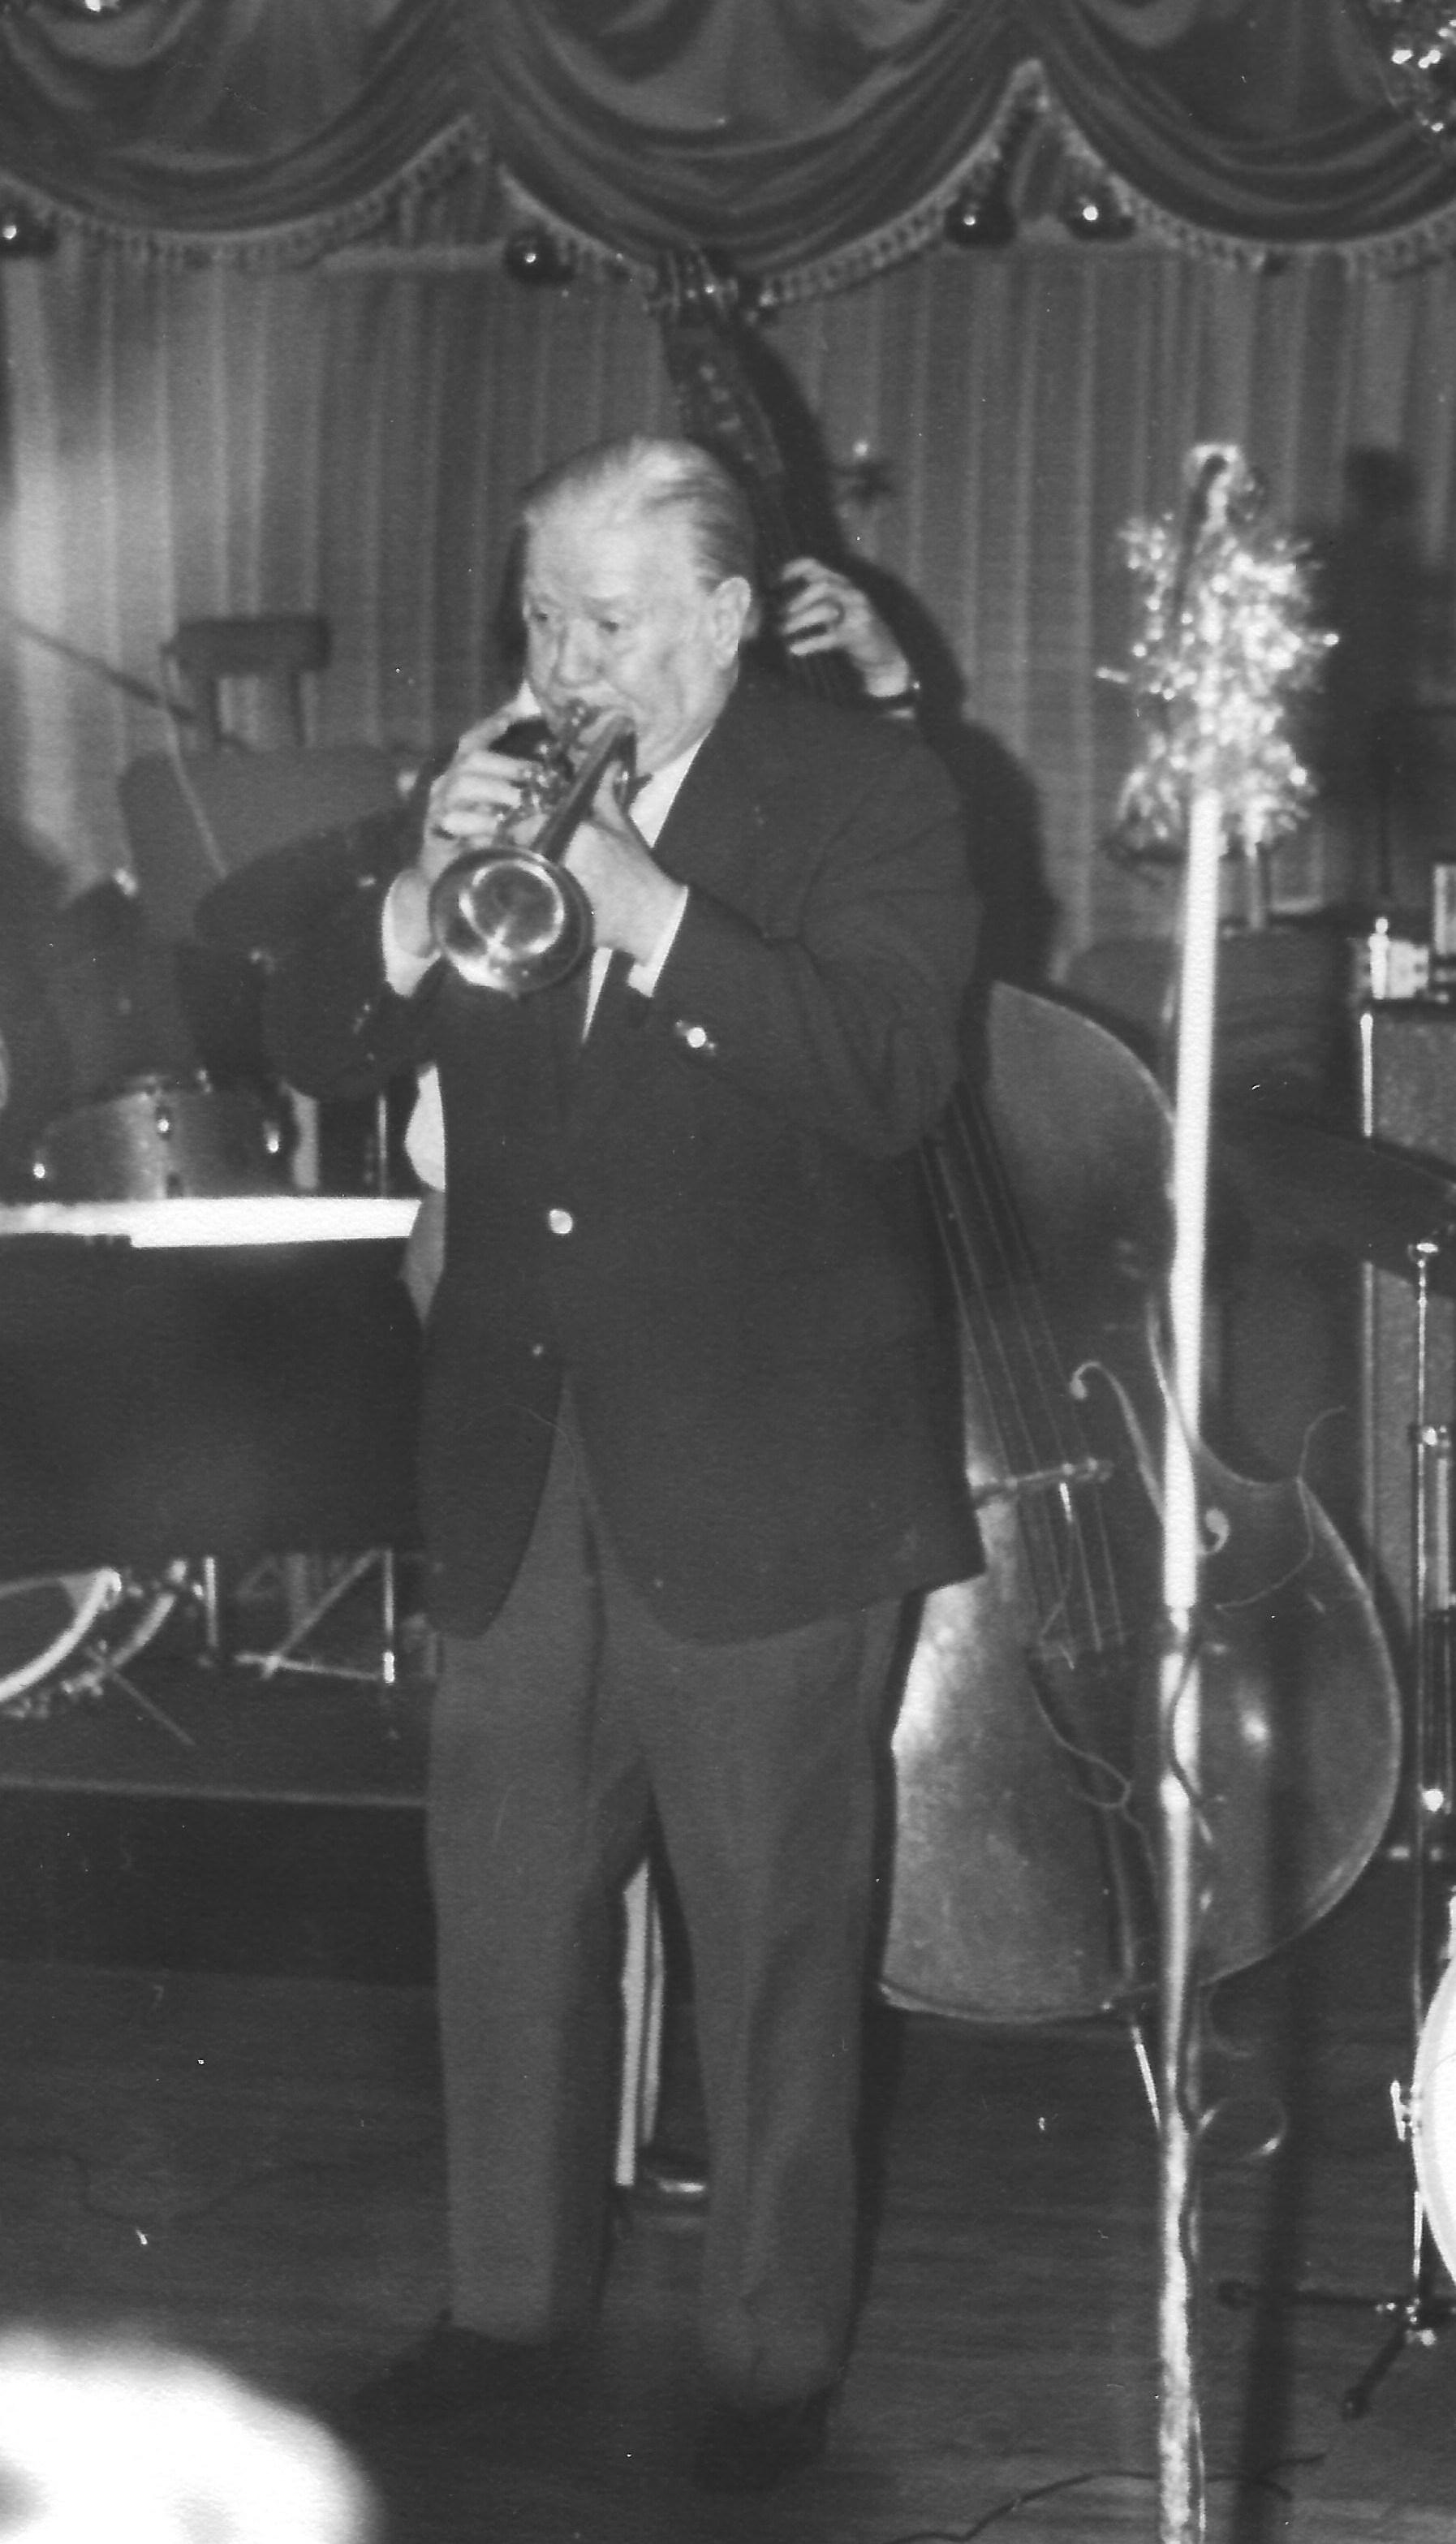 Wild Bill Davison, Titos Club. Cardiff, 5th December 1977